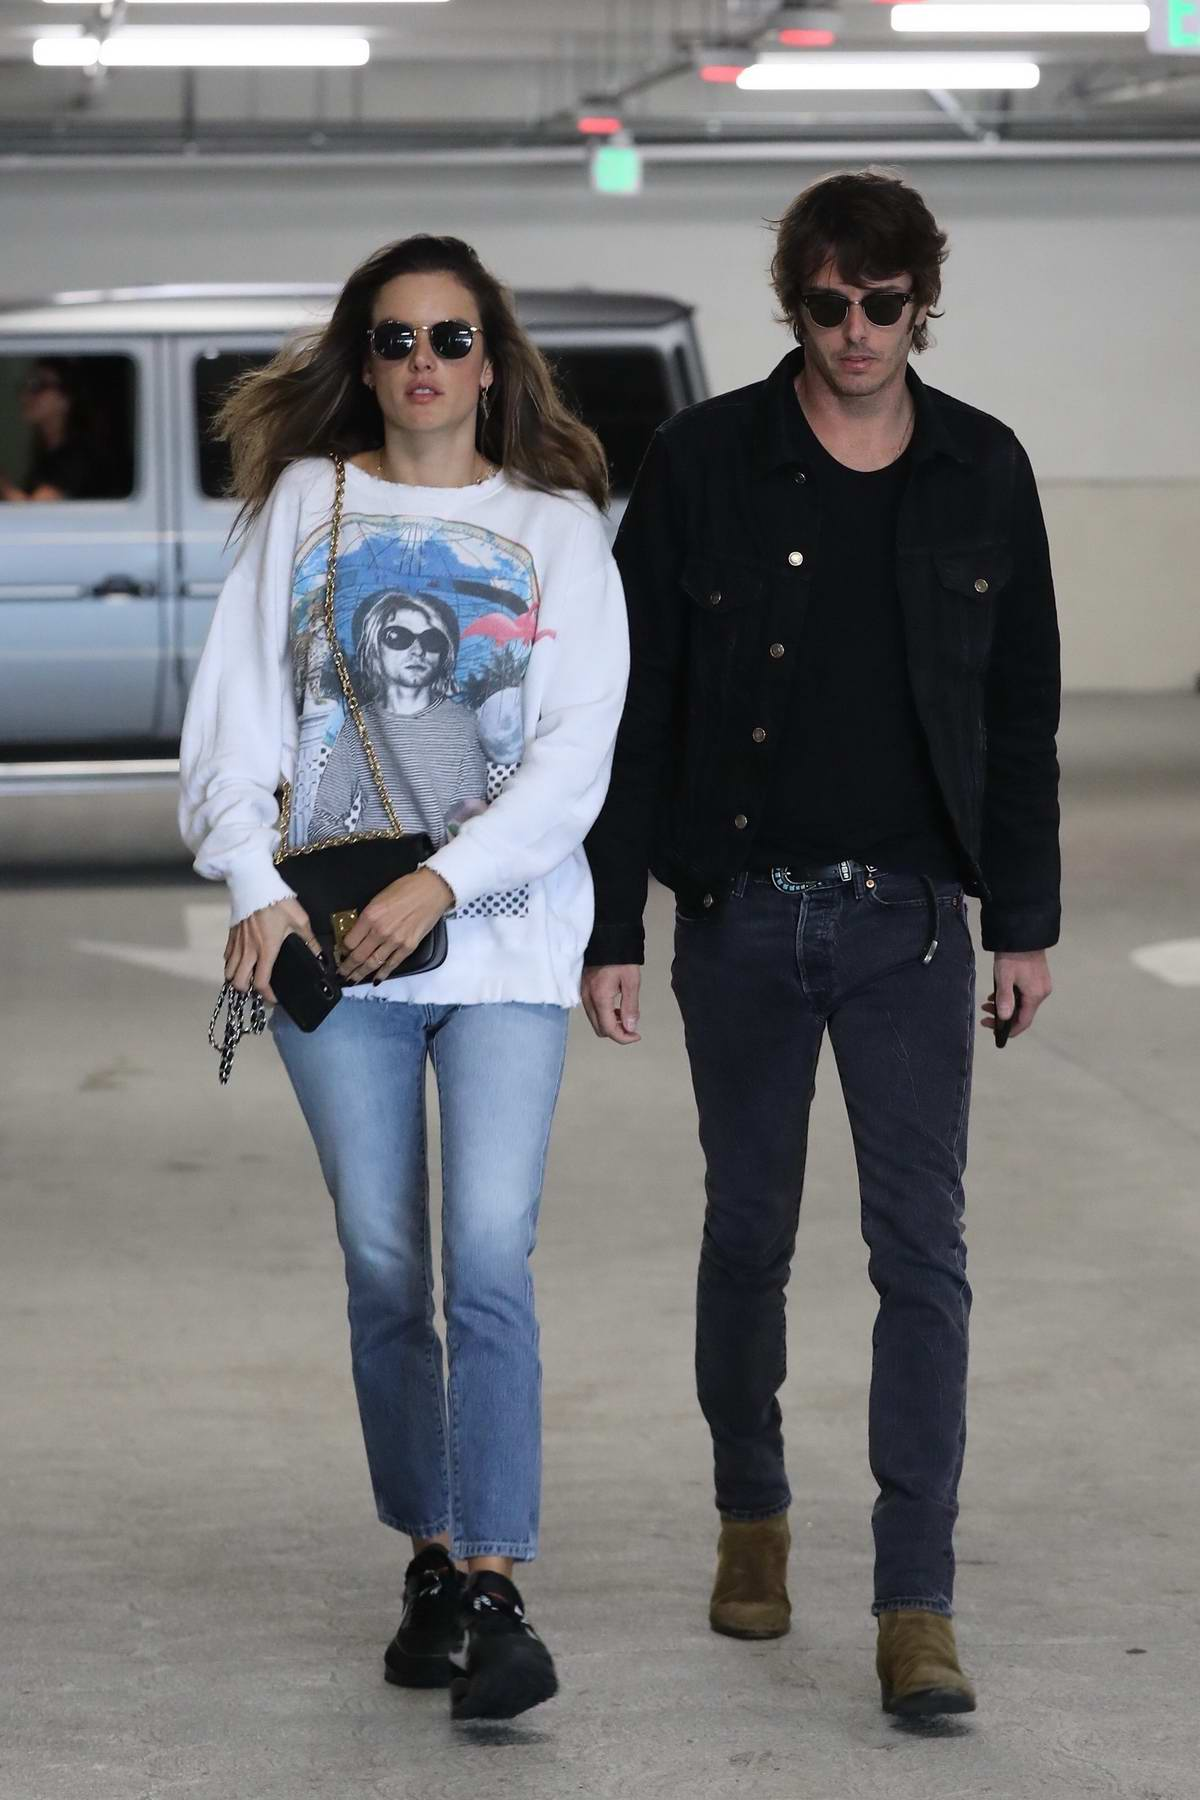 Alessandra Ambrosio and Nicolo Oddi steps out for a movie date in Century City, California